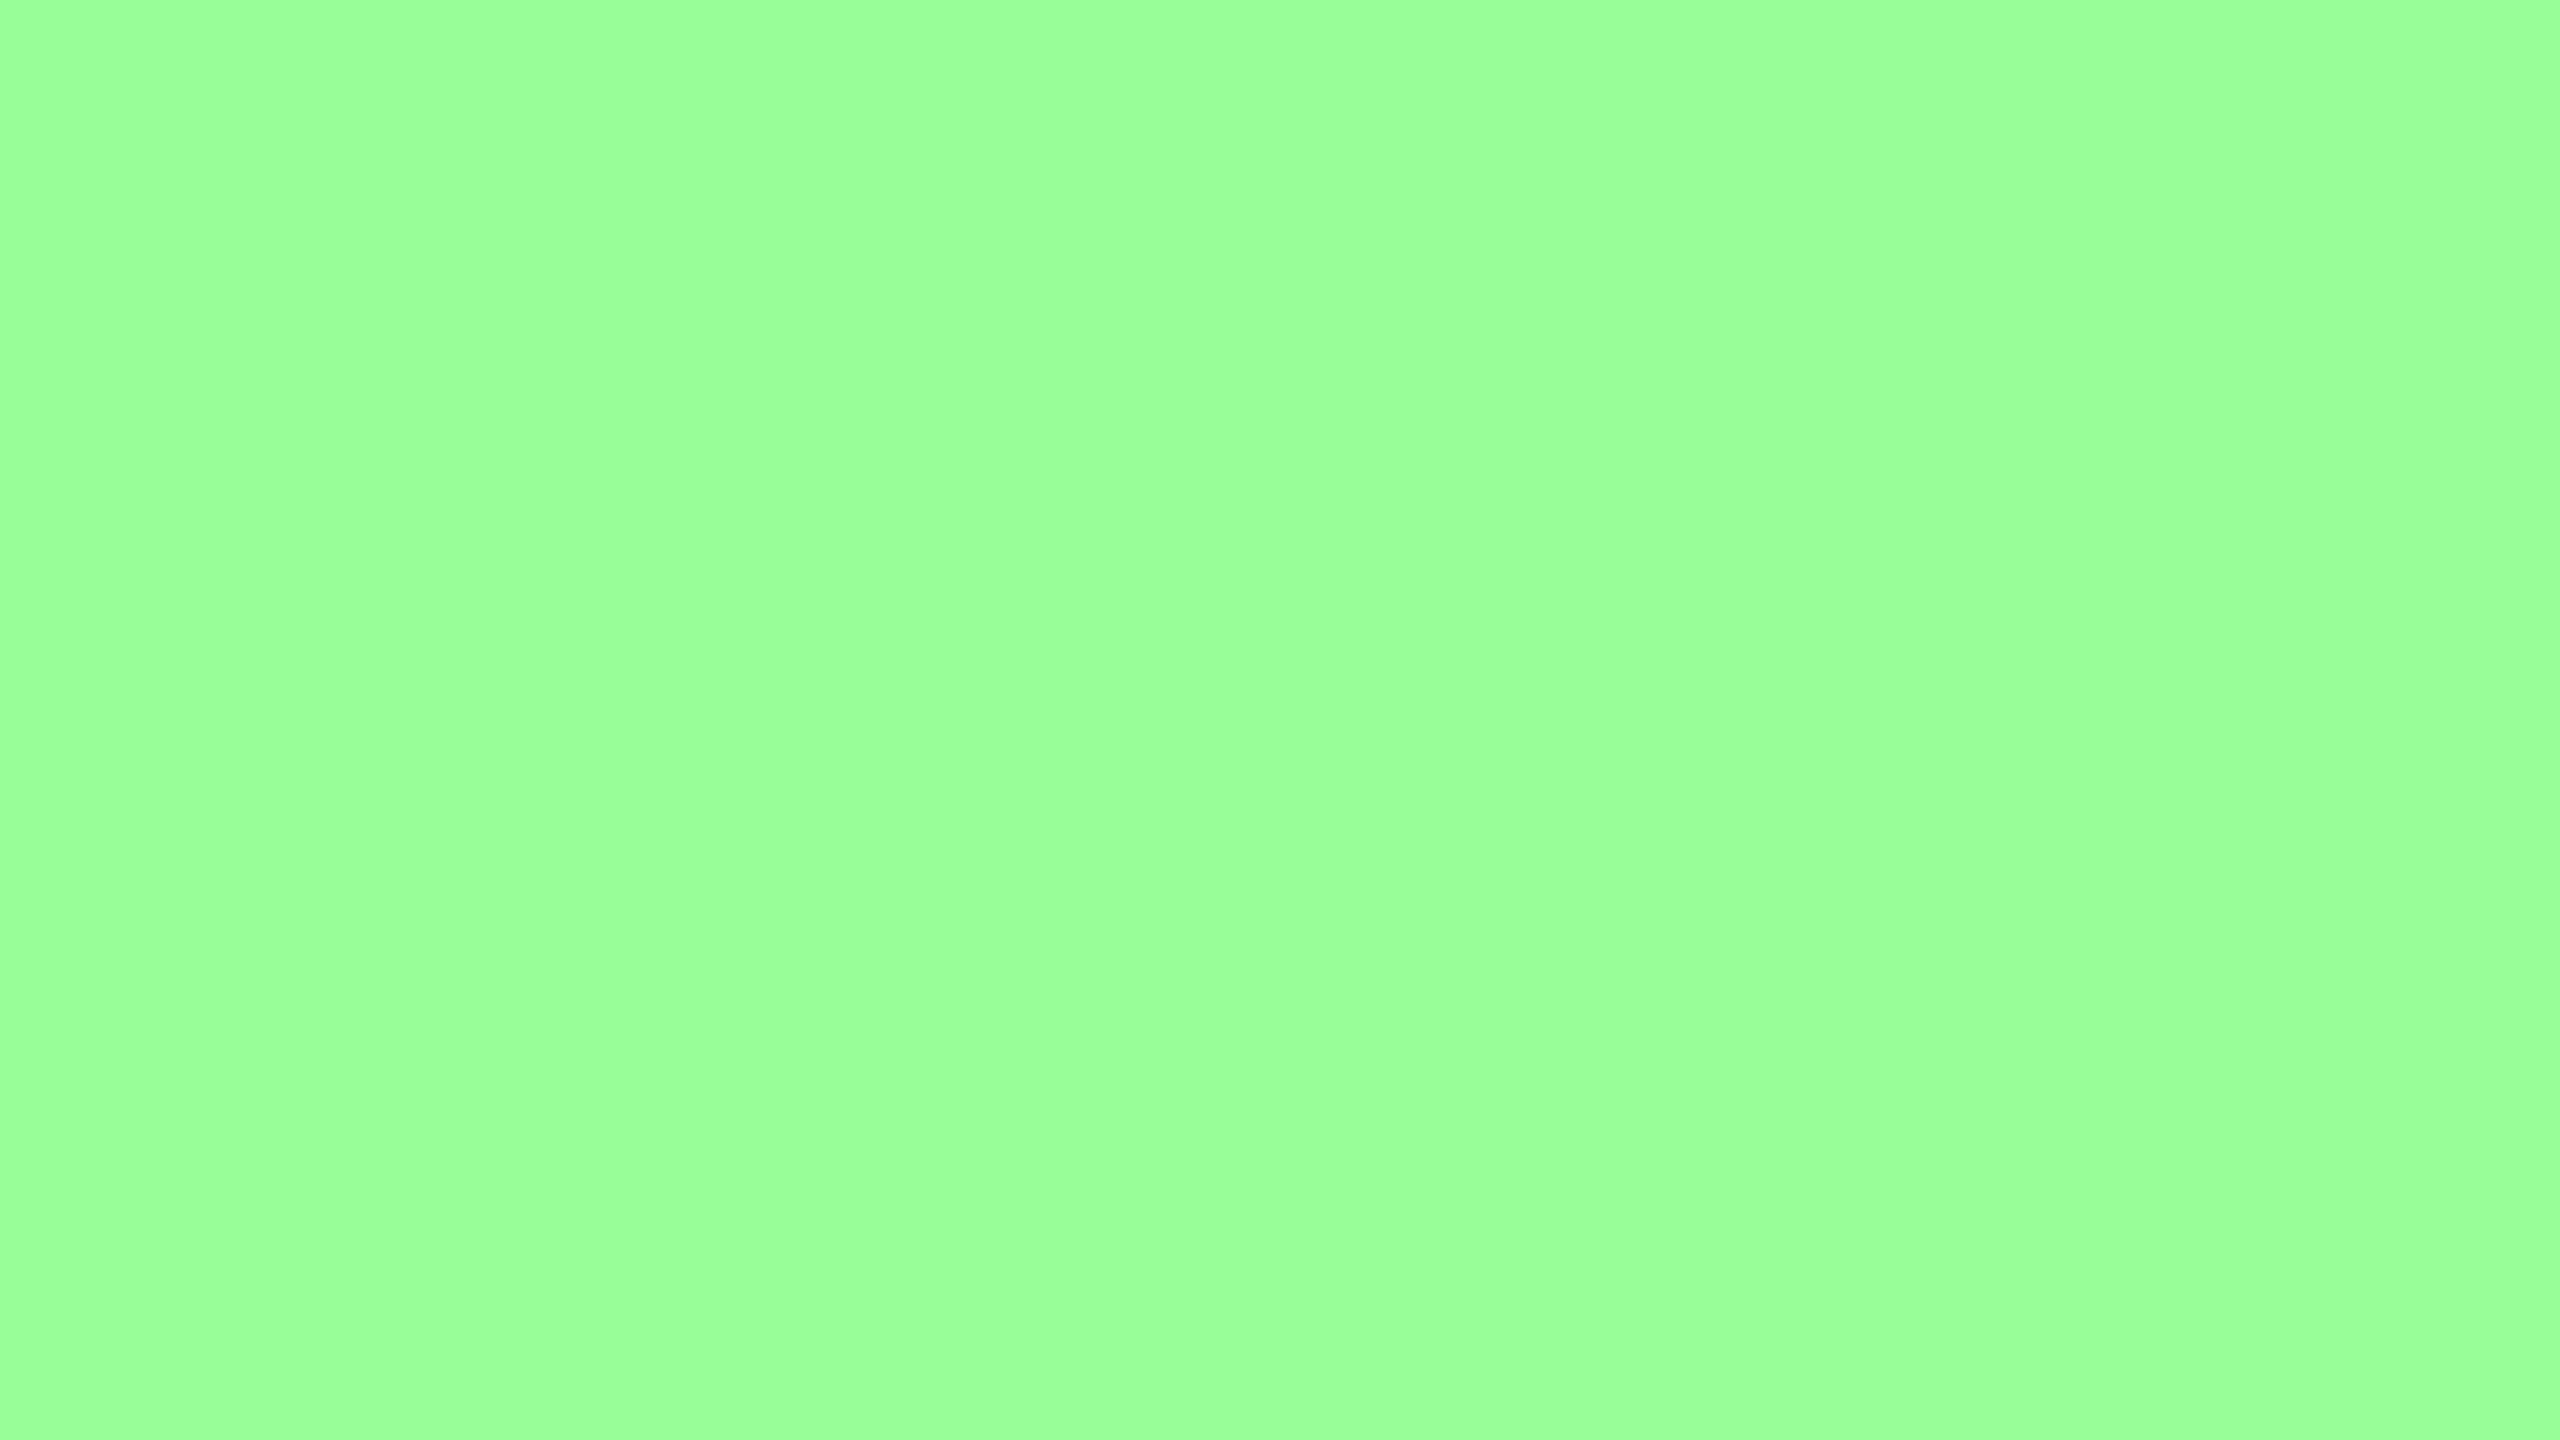 Plain Mint Green Wallpaper